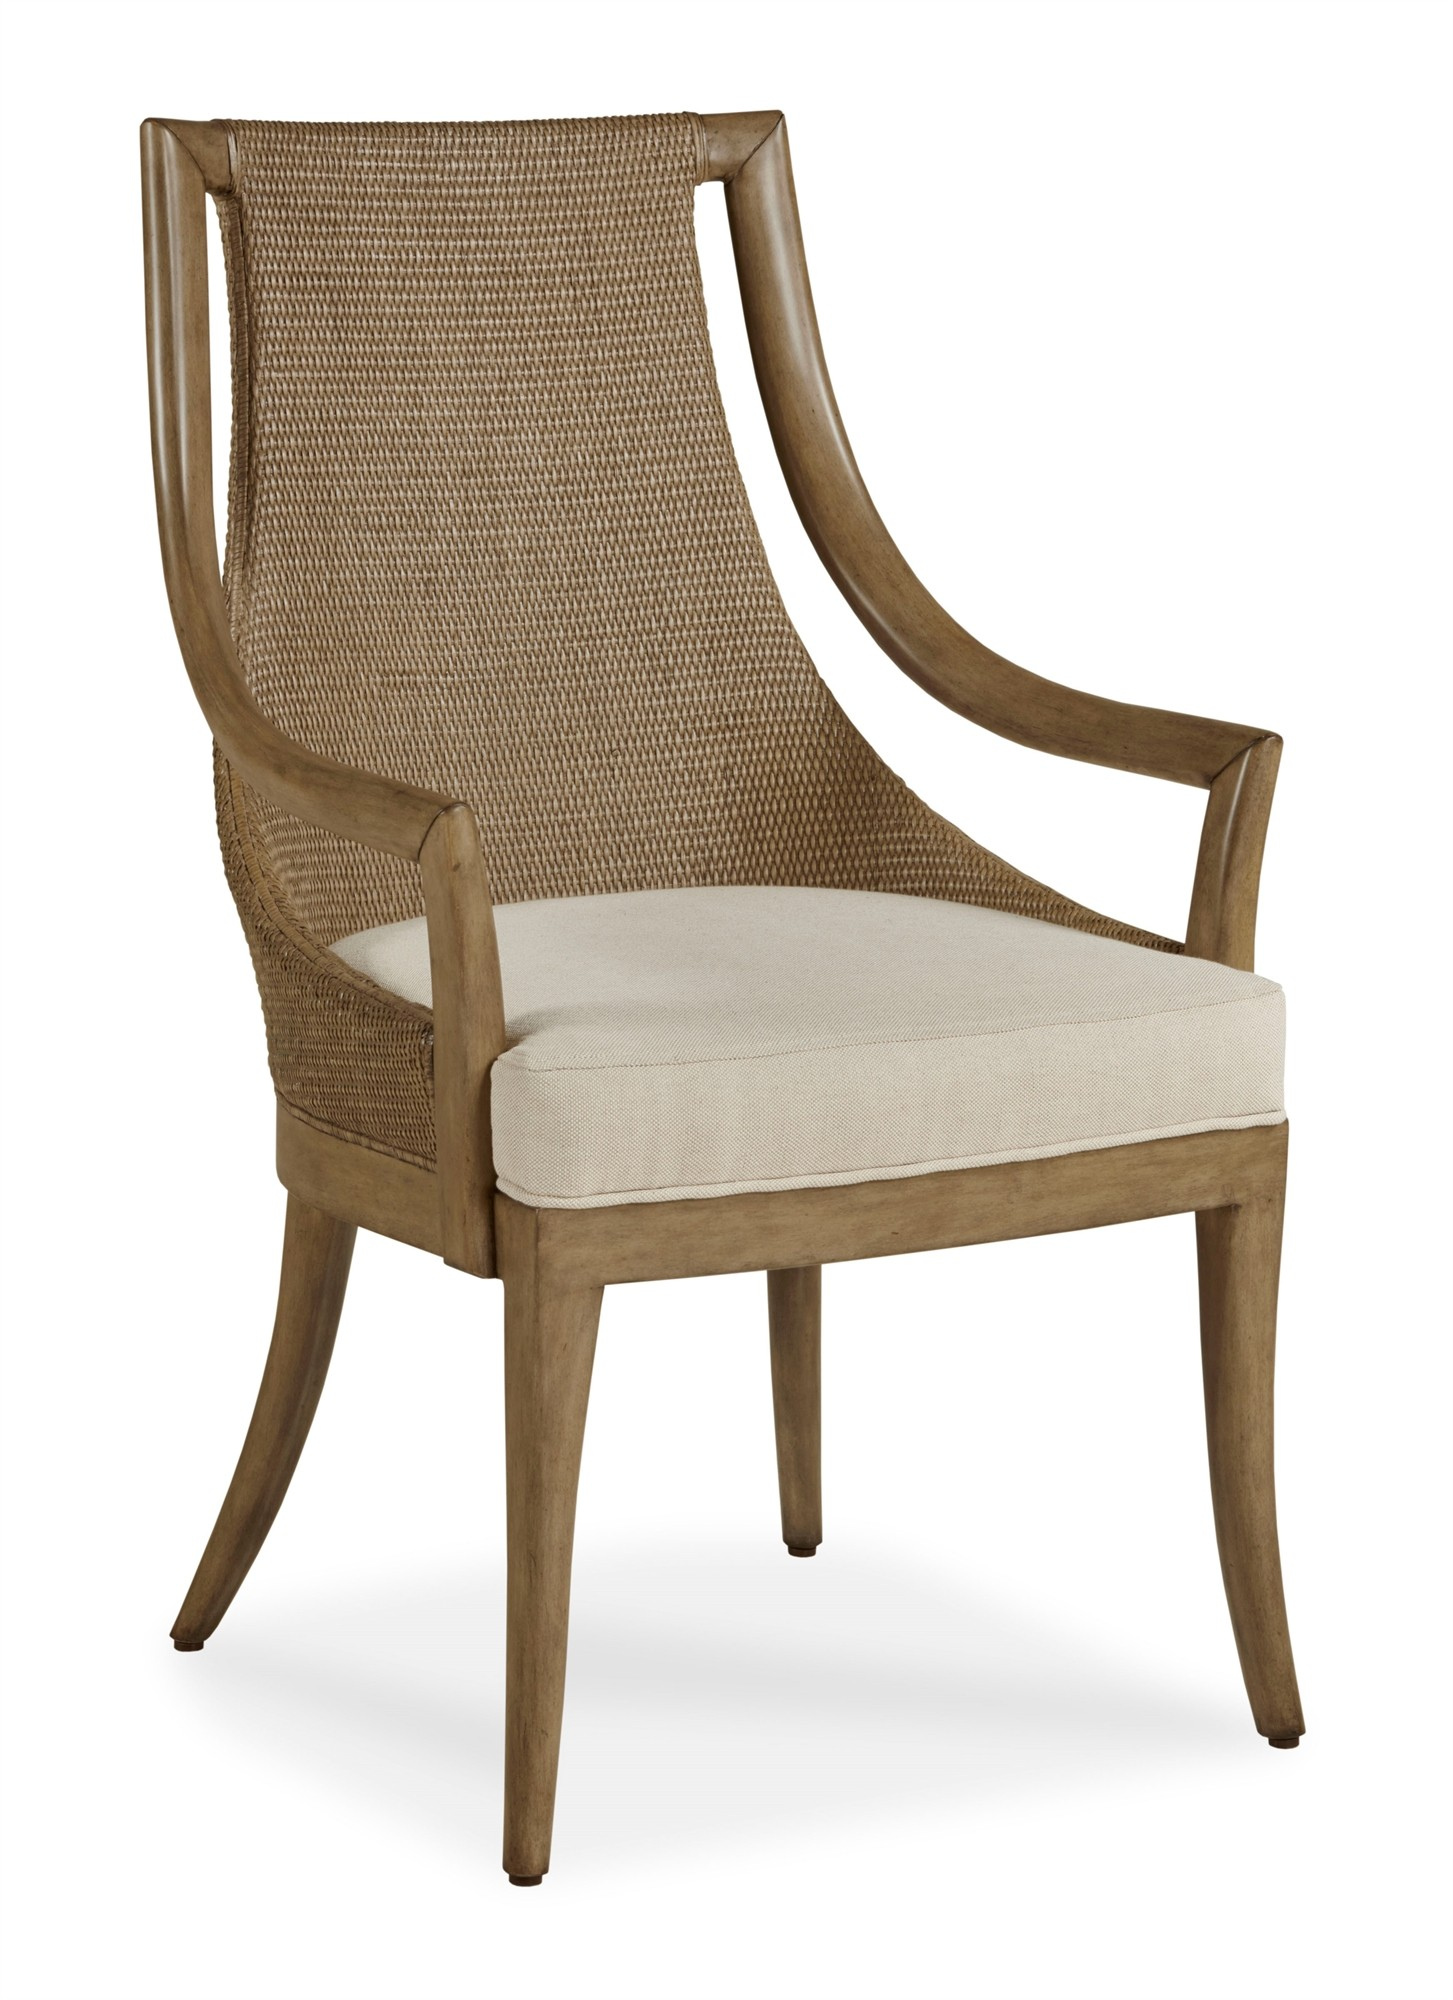 Paragon Dining Chair - Morel Grey/Flax